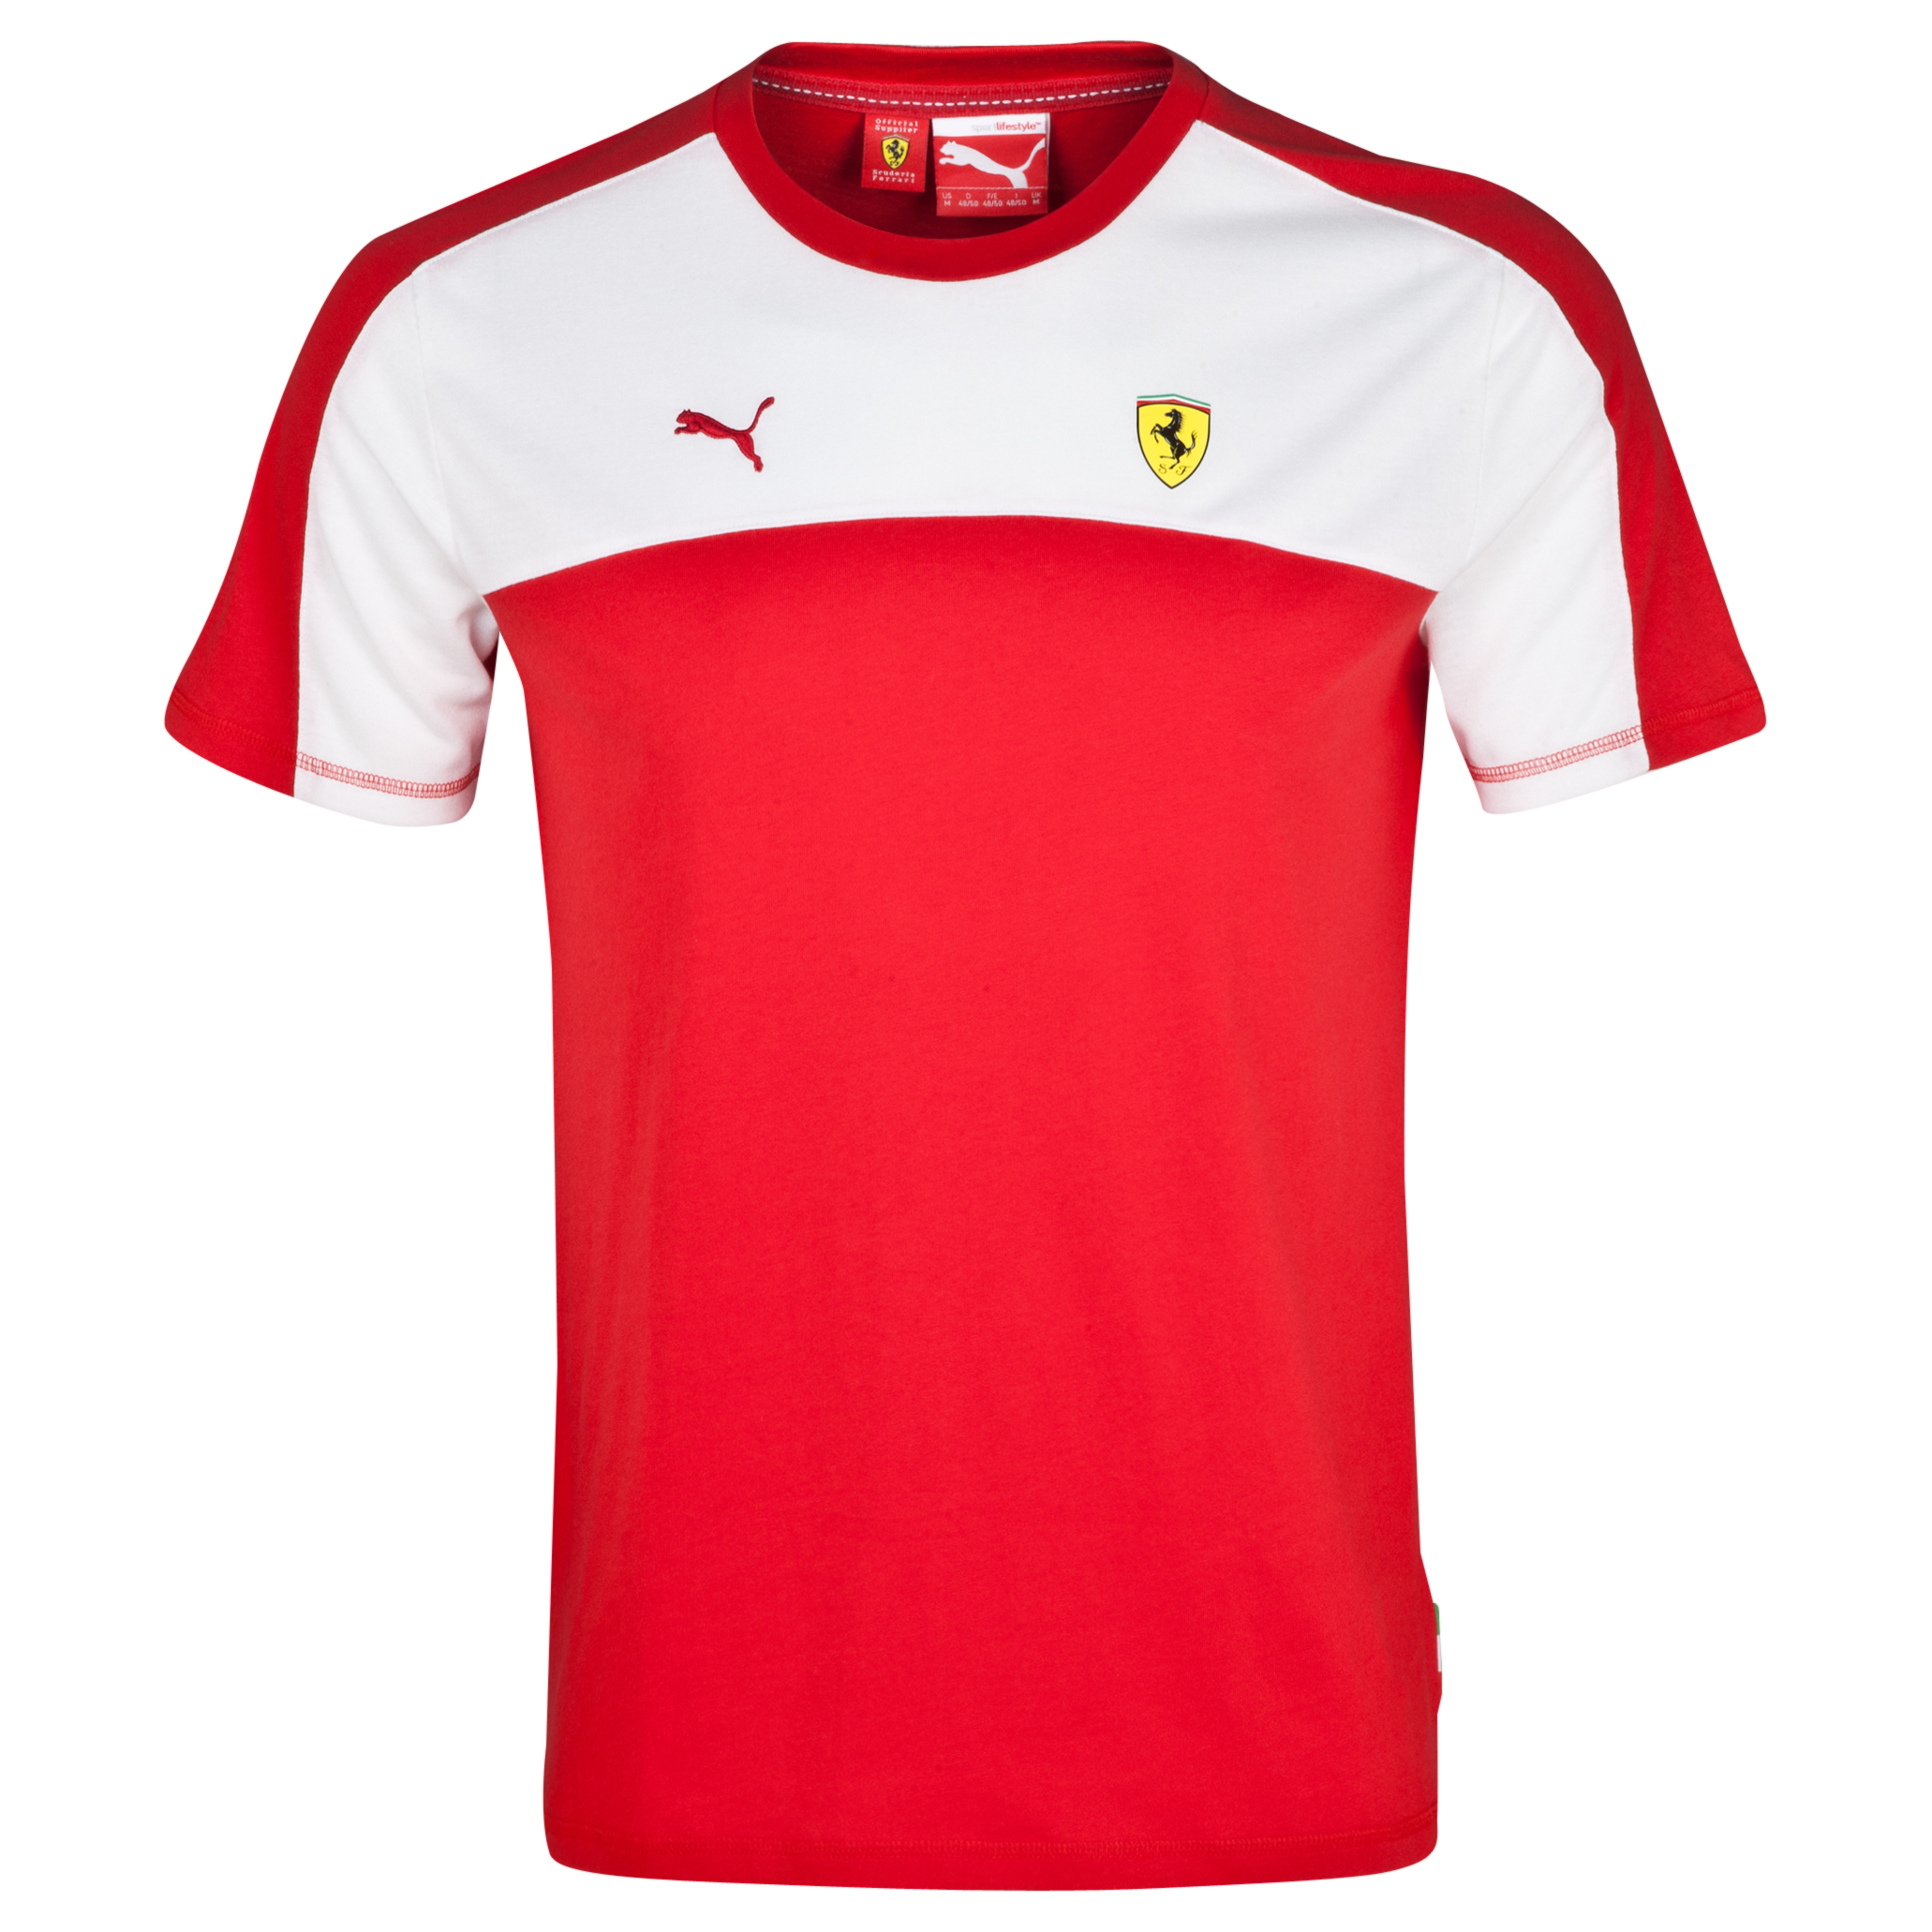 Scuderia Ferrari T-Shirt Red